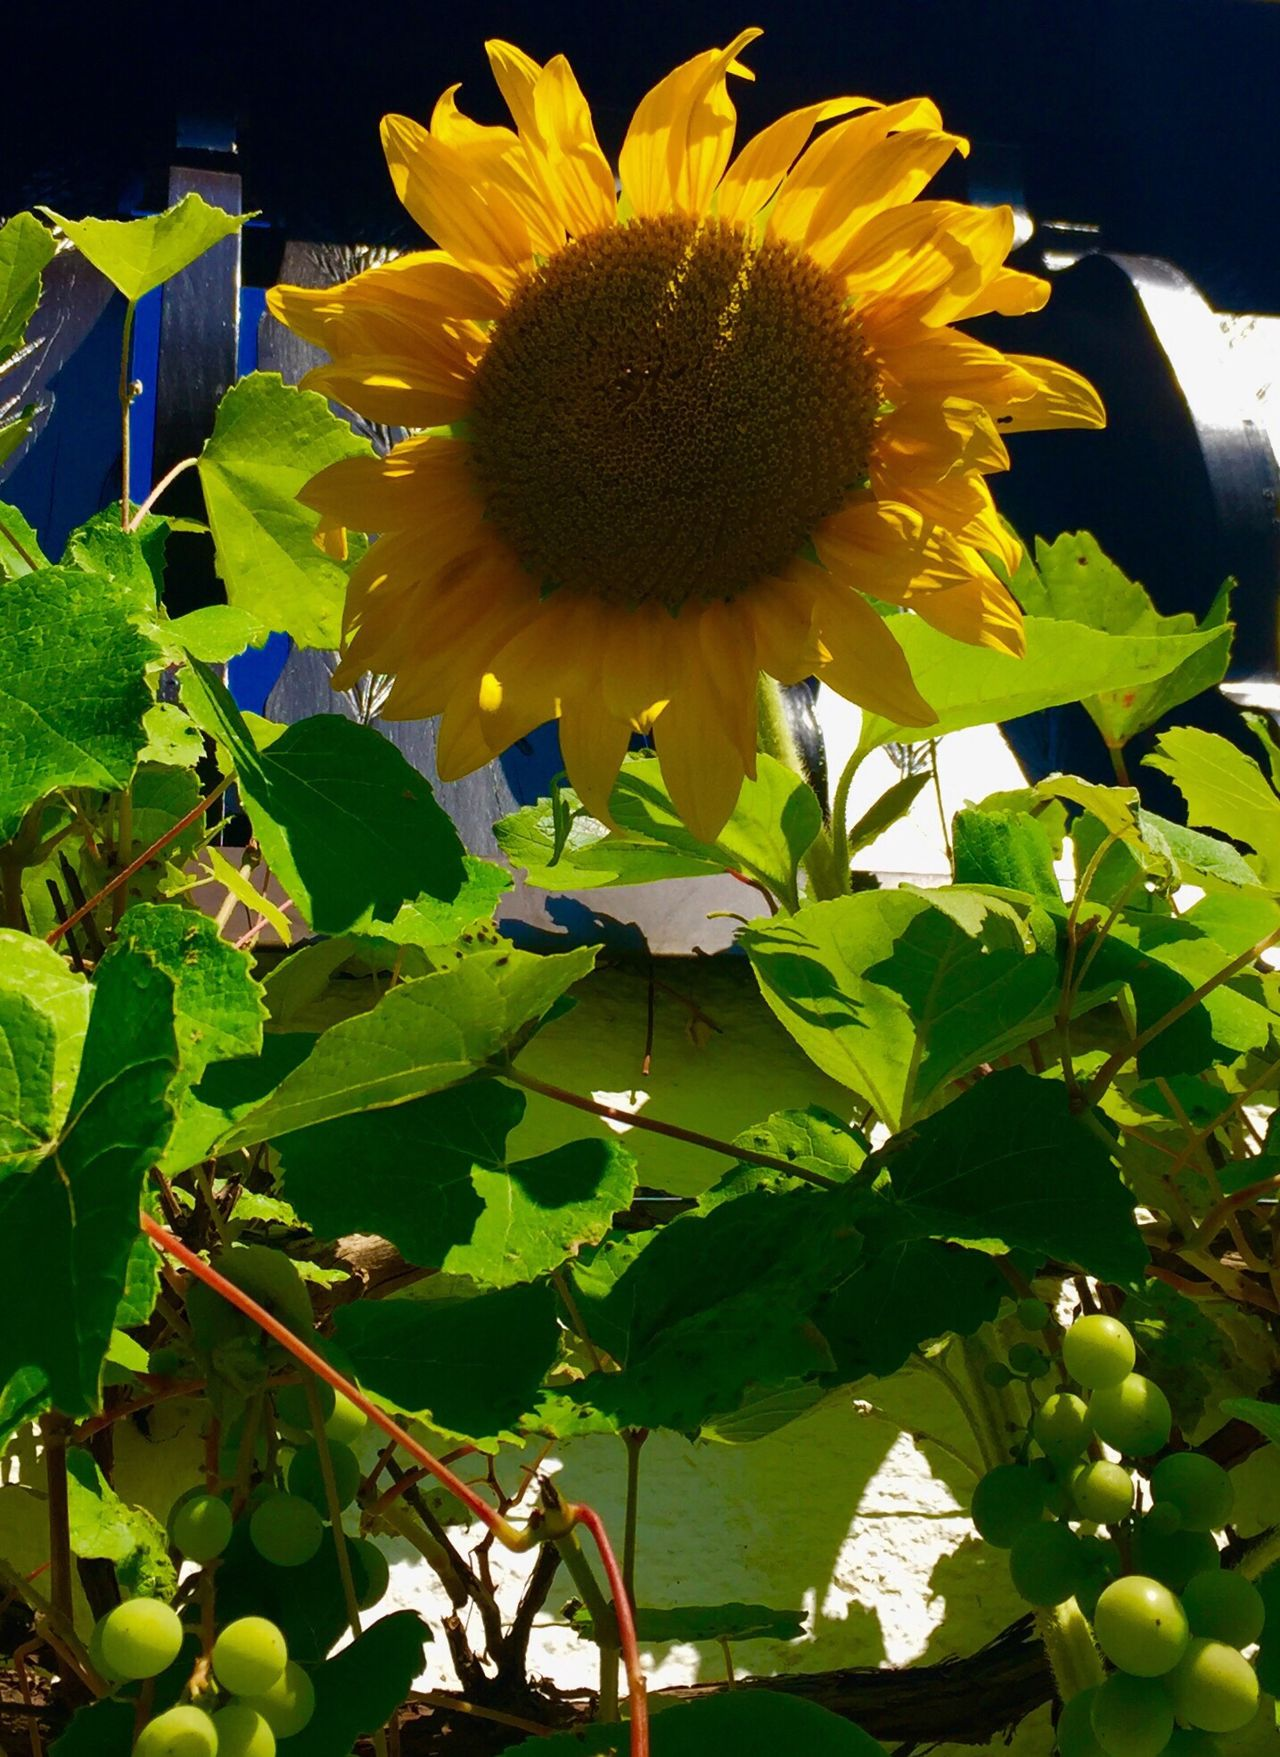 The Summer Comes Sunflowers And Grapes Beauty In Nature Nature_collection Nature Photography Eye4photography  Fine Art Photography EyeEm Nature Lover EyeEm Masterclass Eyeemphotography Eyemphotography